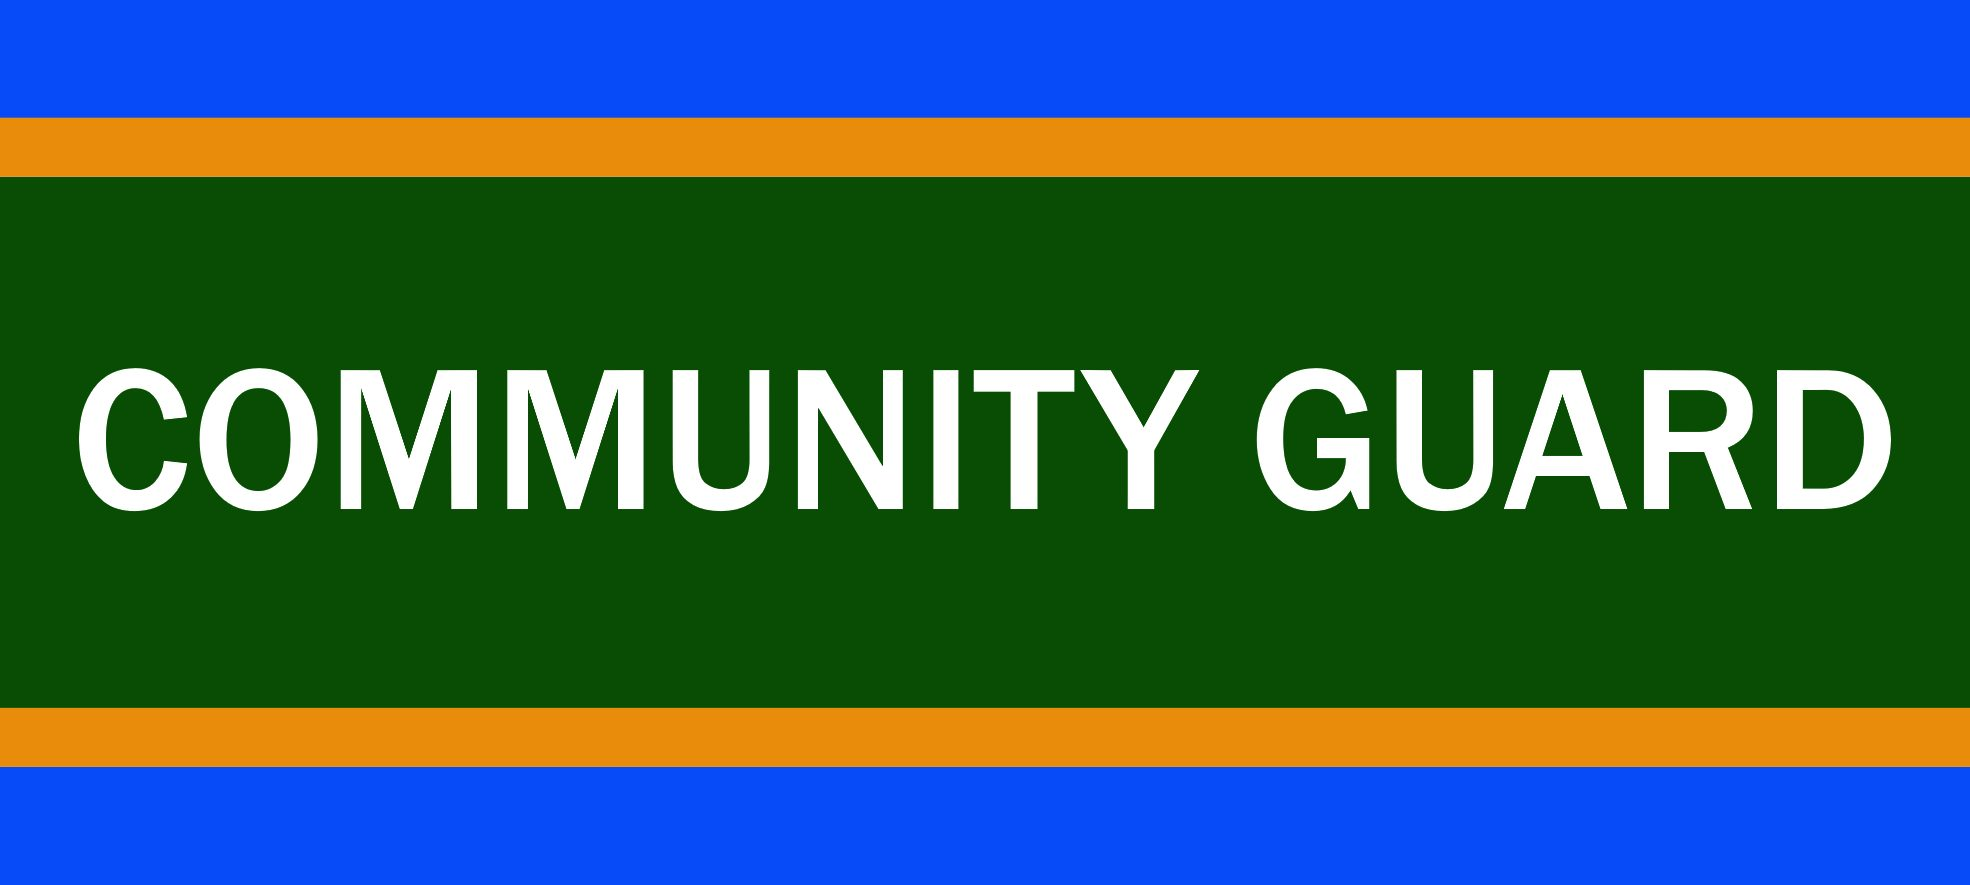 Community Guard UK Limited